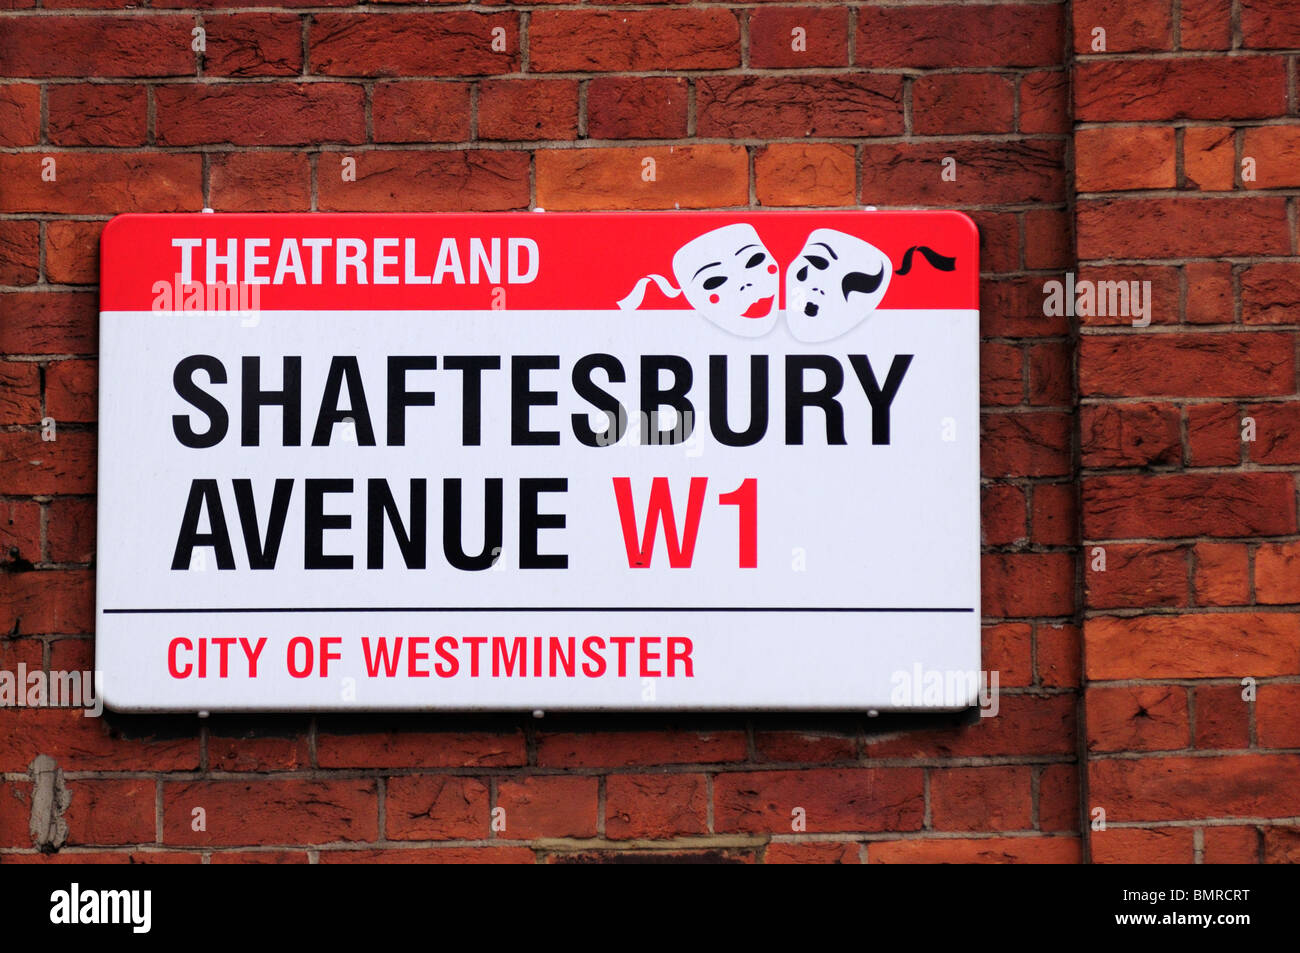 Shaftesbury Avenue theatreland street sign, London, England, UK - Stock Image